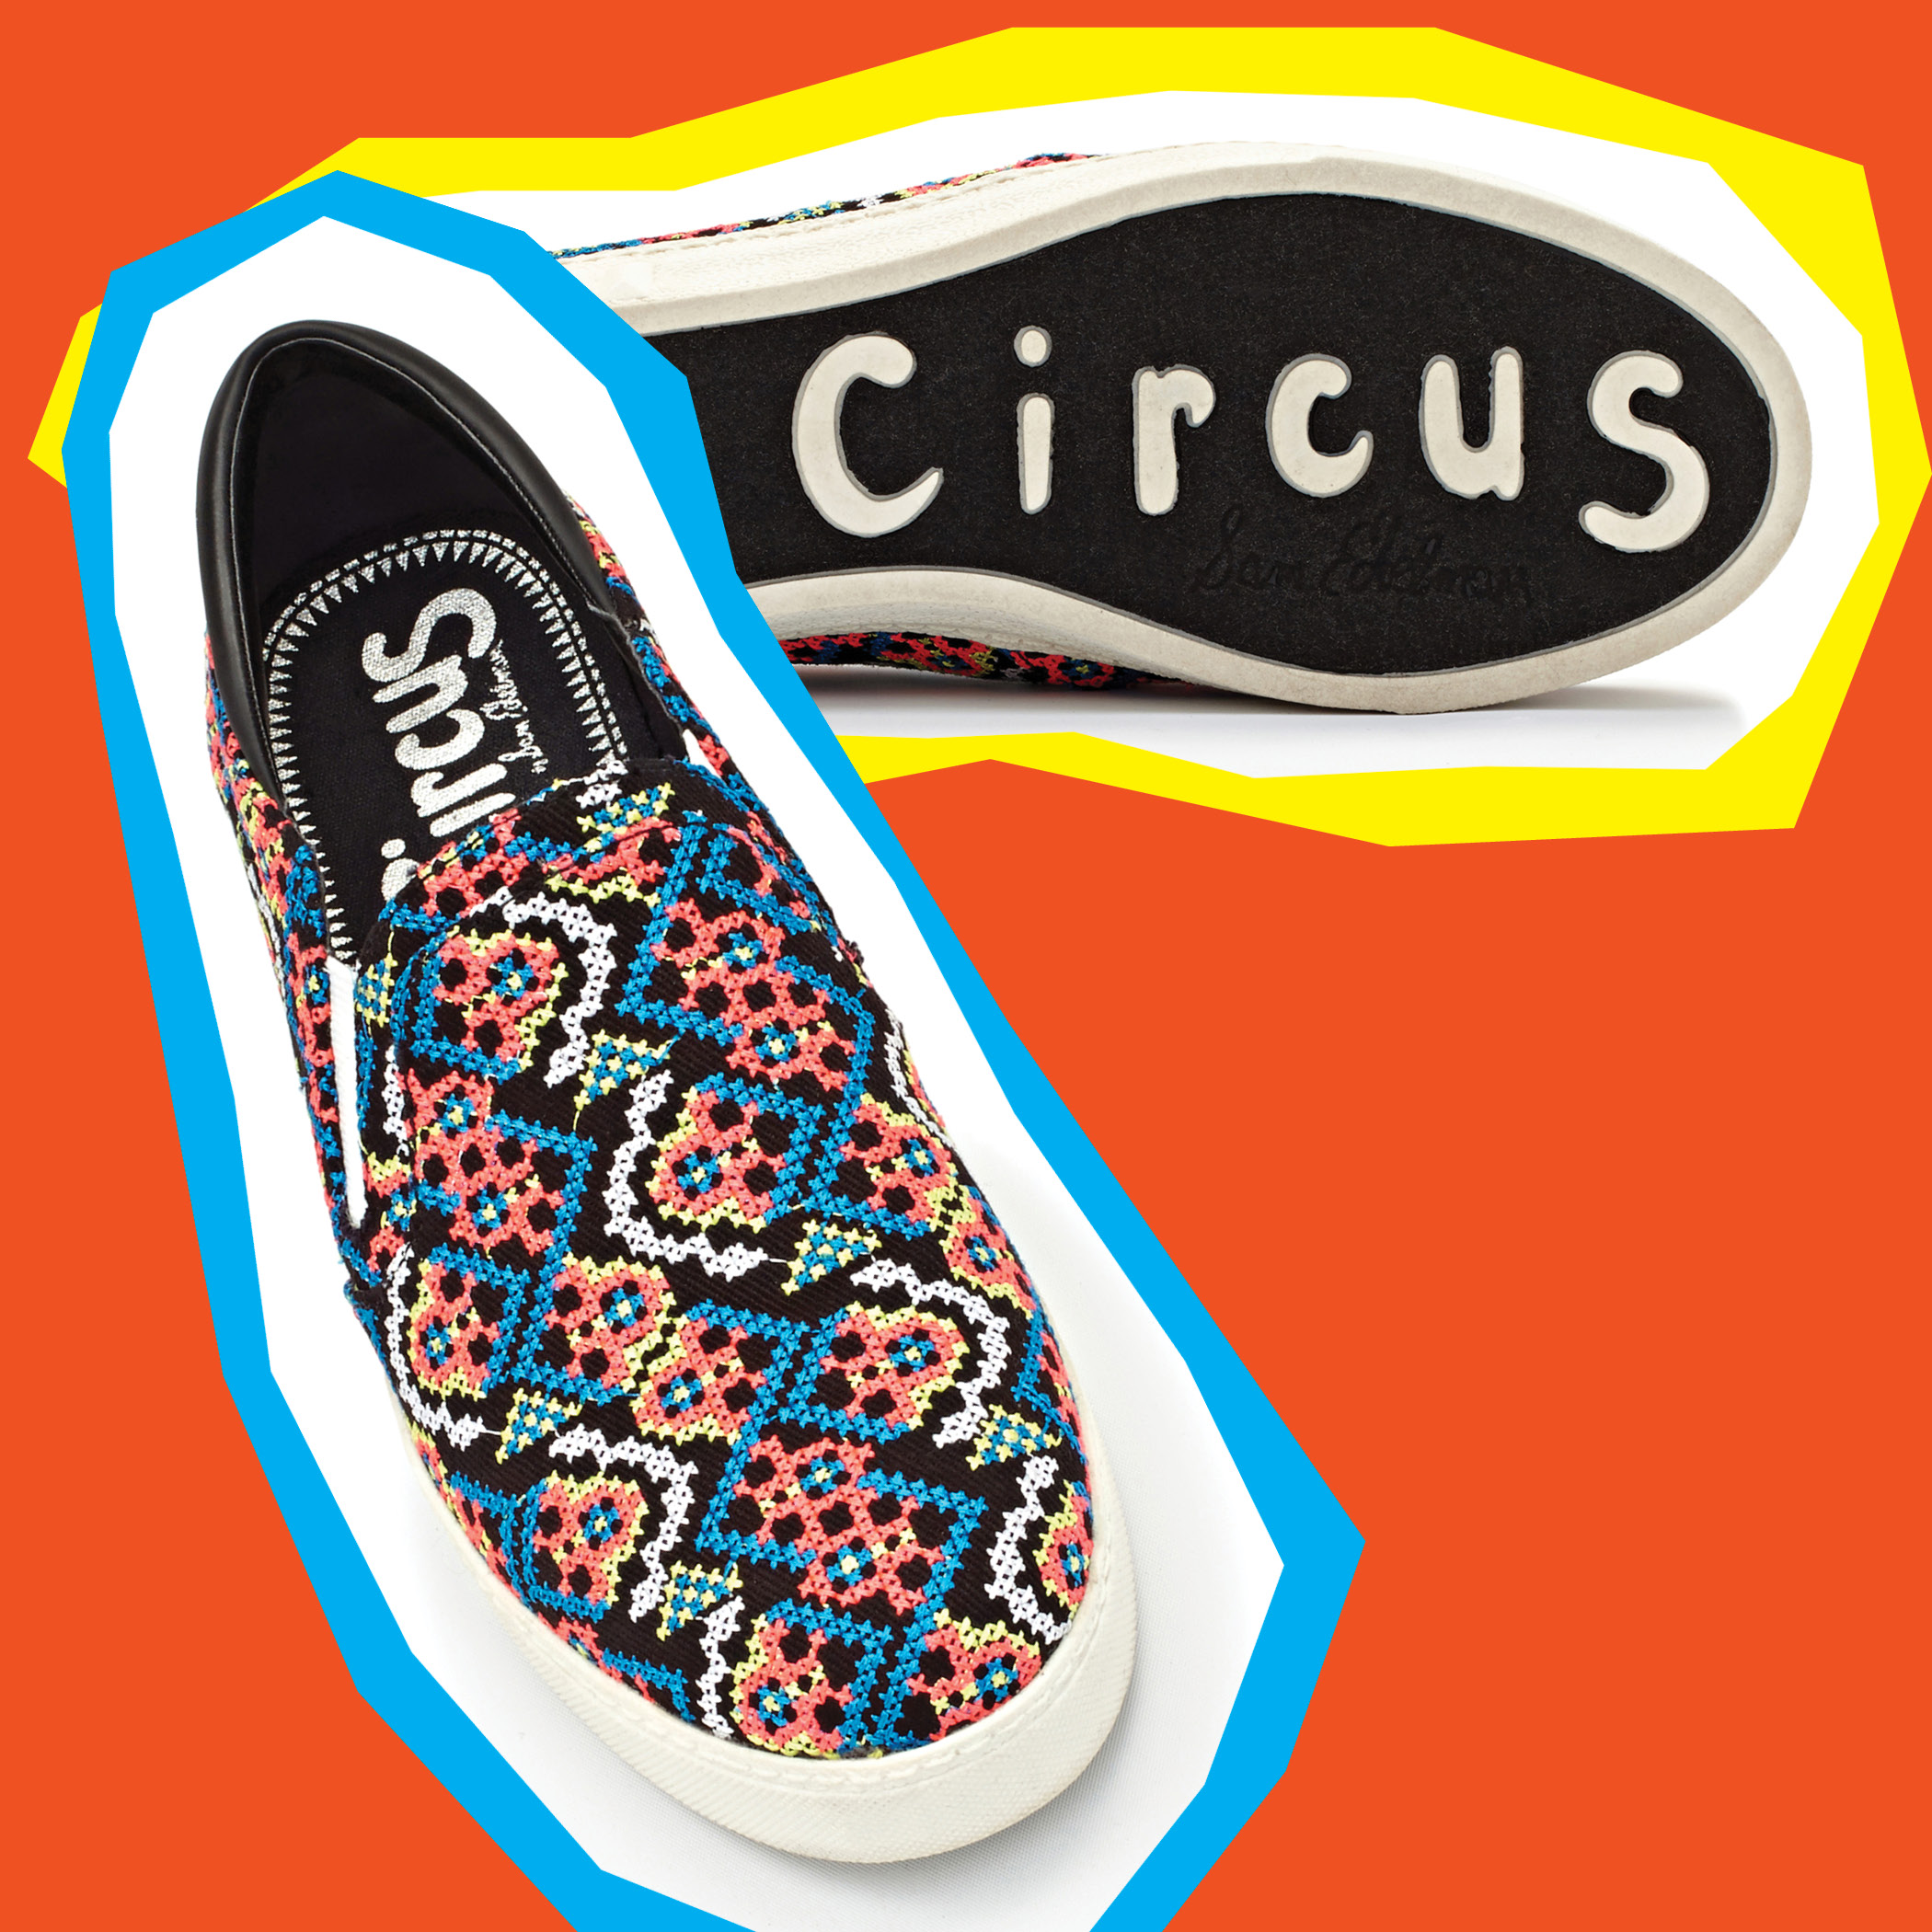 Circus Instagram Options14.jpg